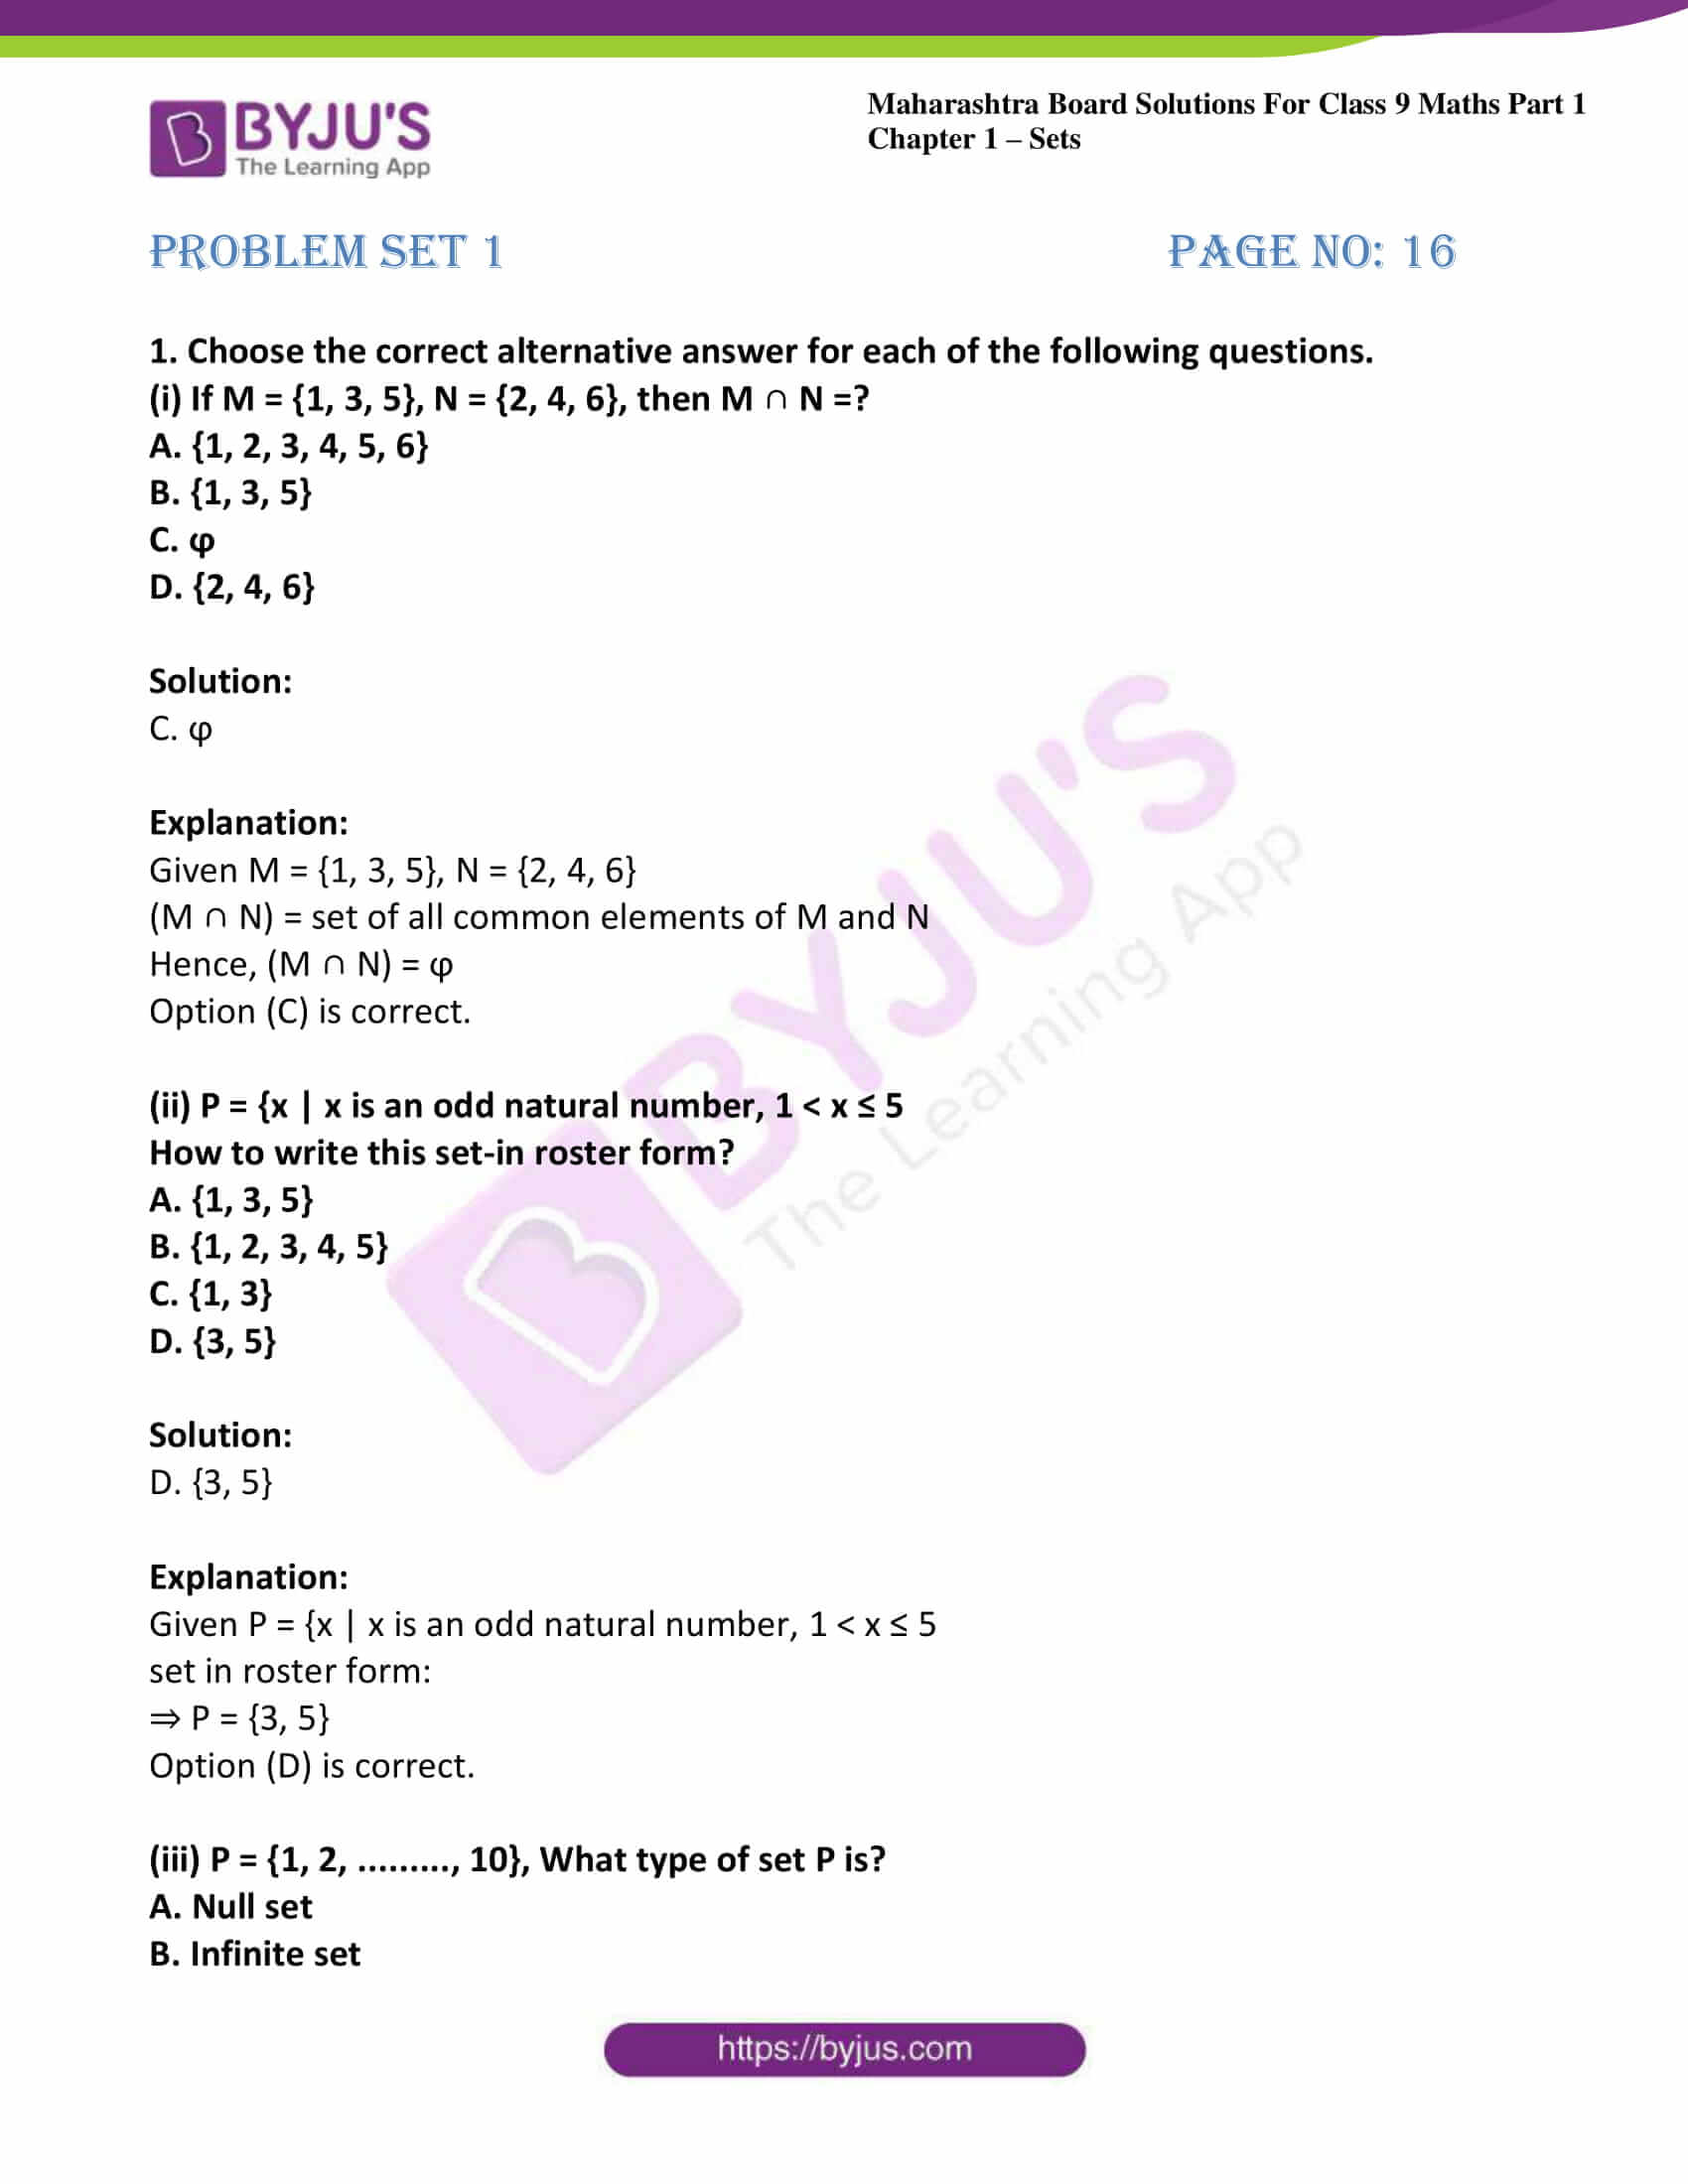 msbshse sol class 9 maths part 1 chapter 1 sets 17